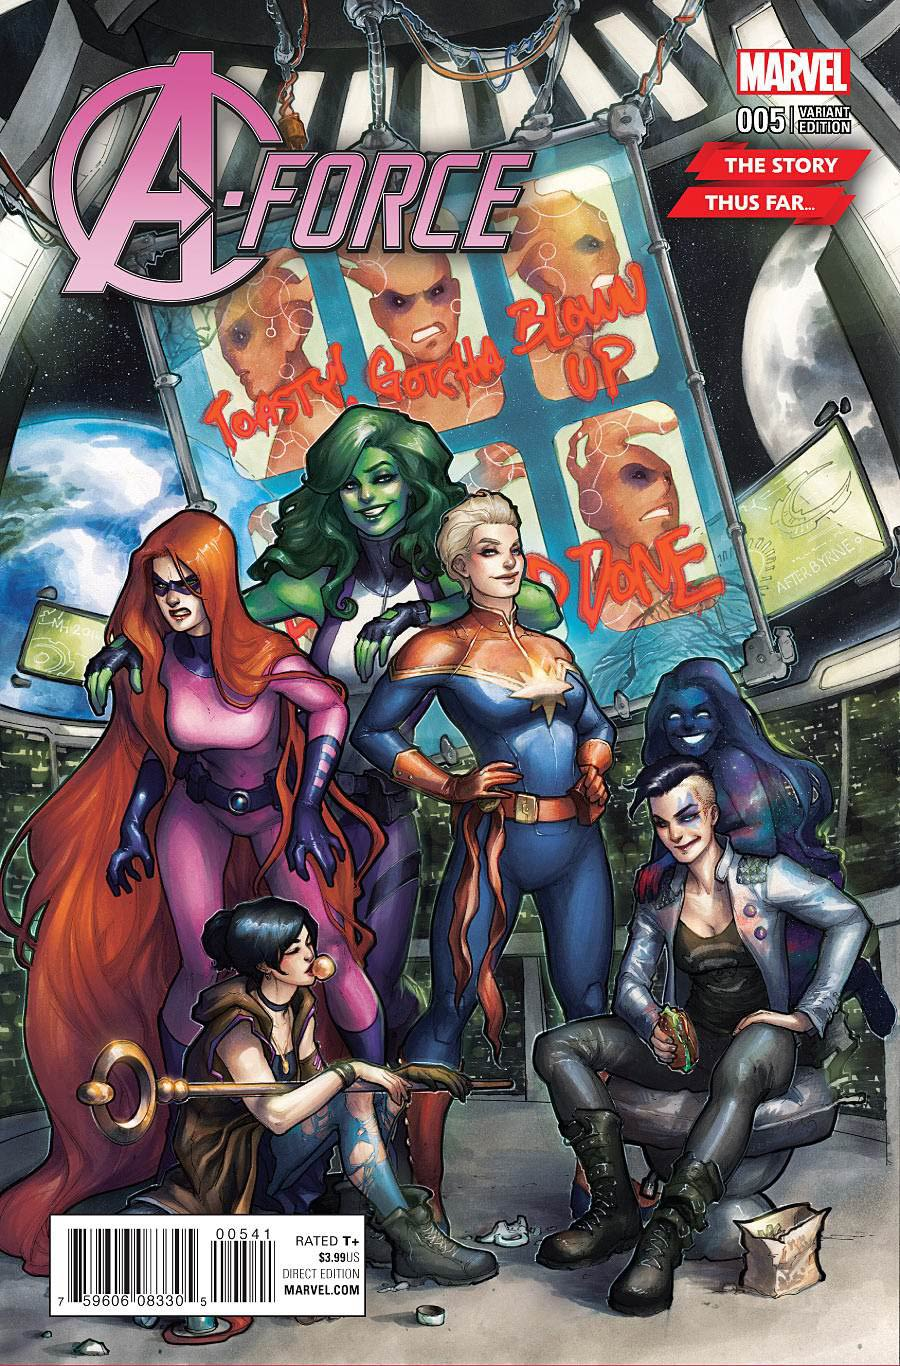 A-Force Vol 2 #5 Cover B Variant Meghan Hetrick Story Thus Far Cover